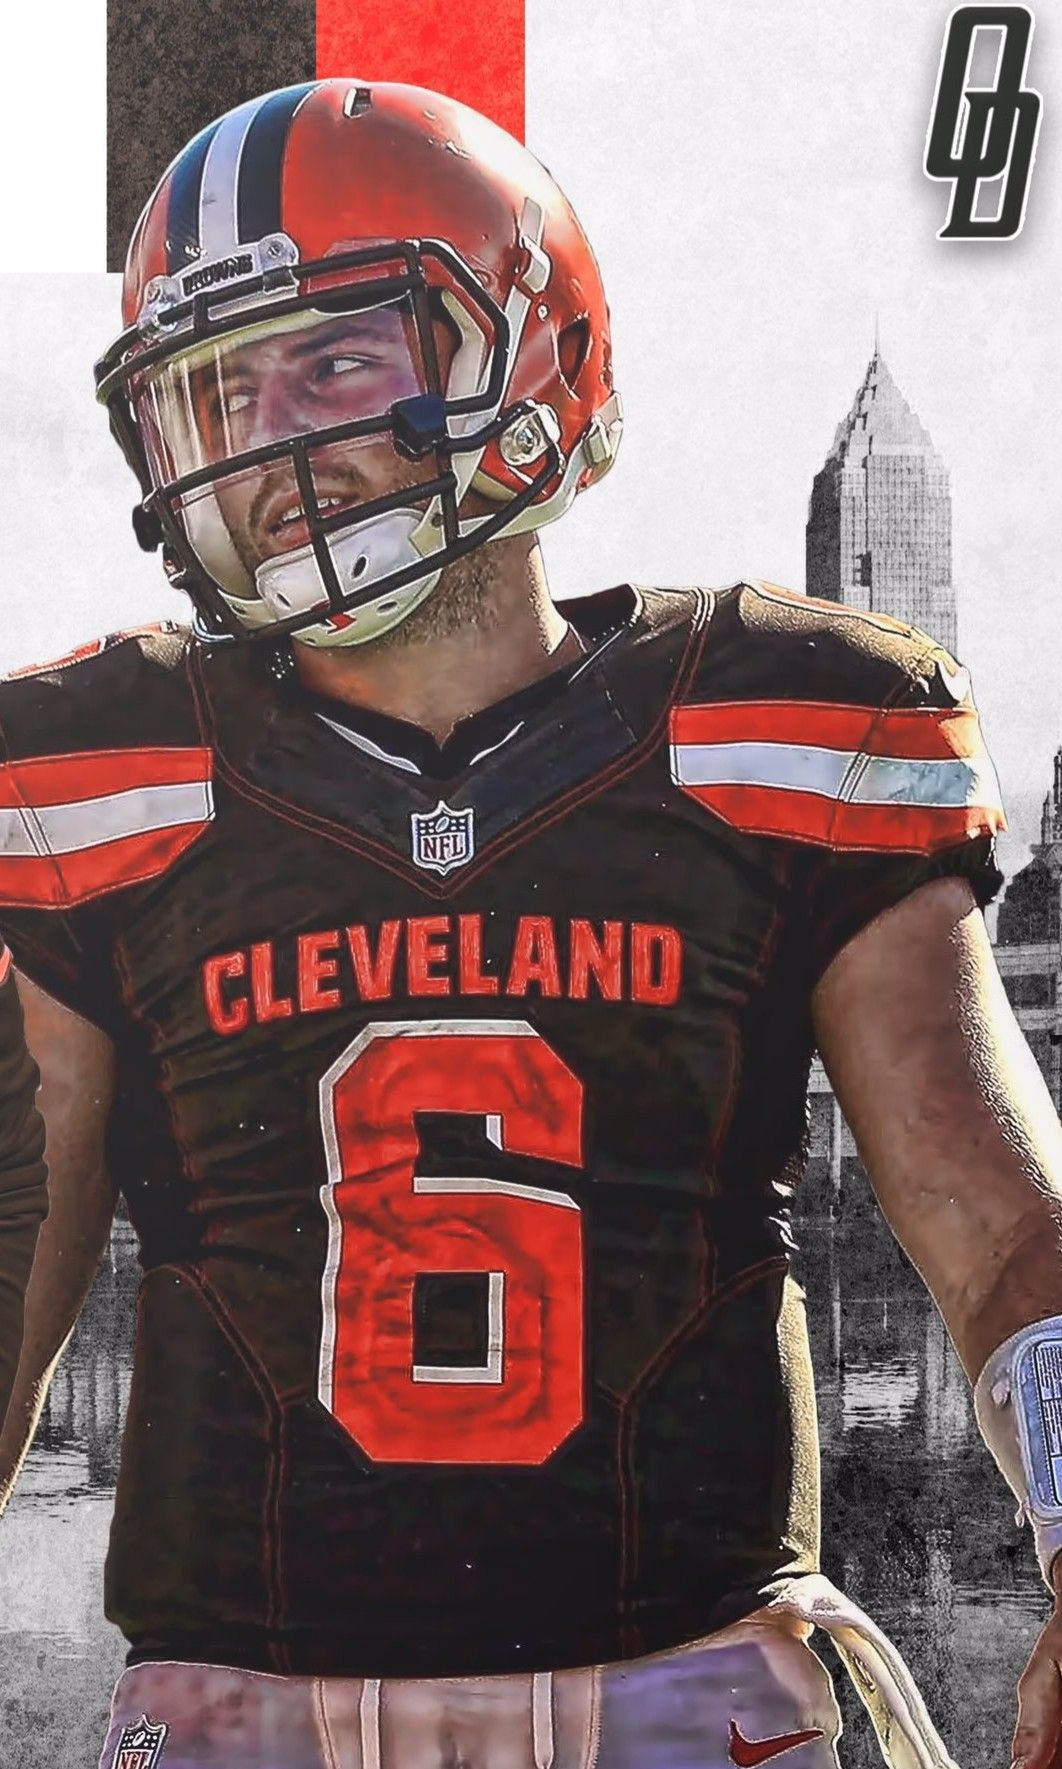 Pin by Melanie Wishner on Baker mayfield in 2020 Nfl